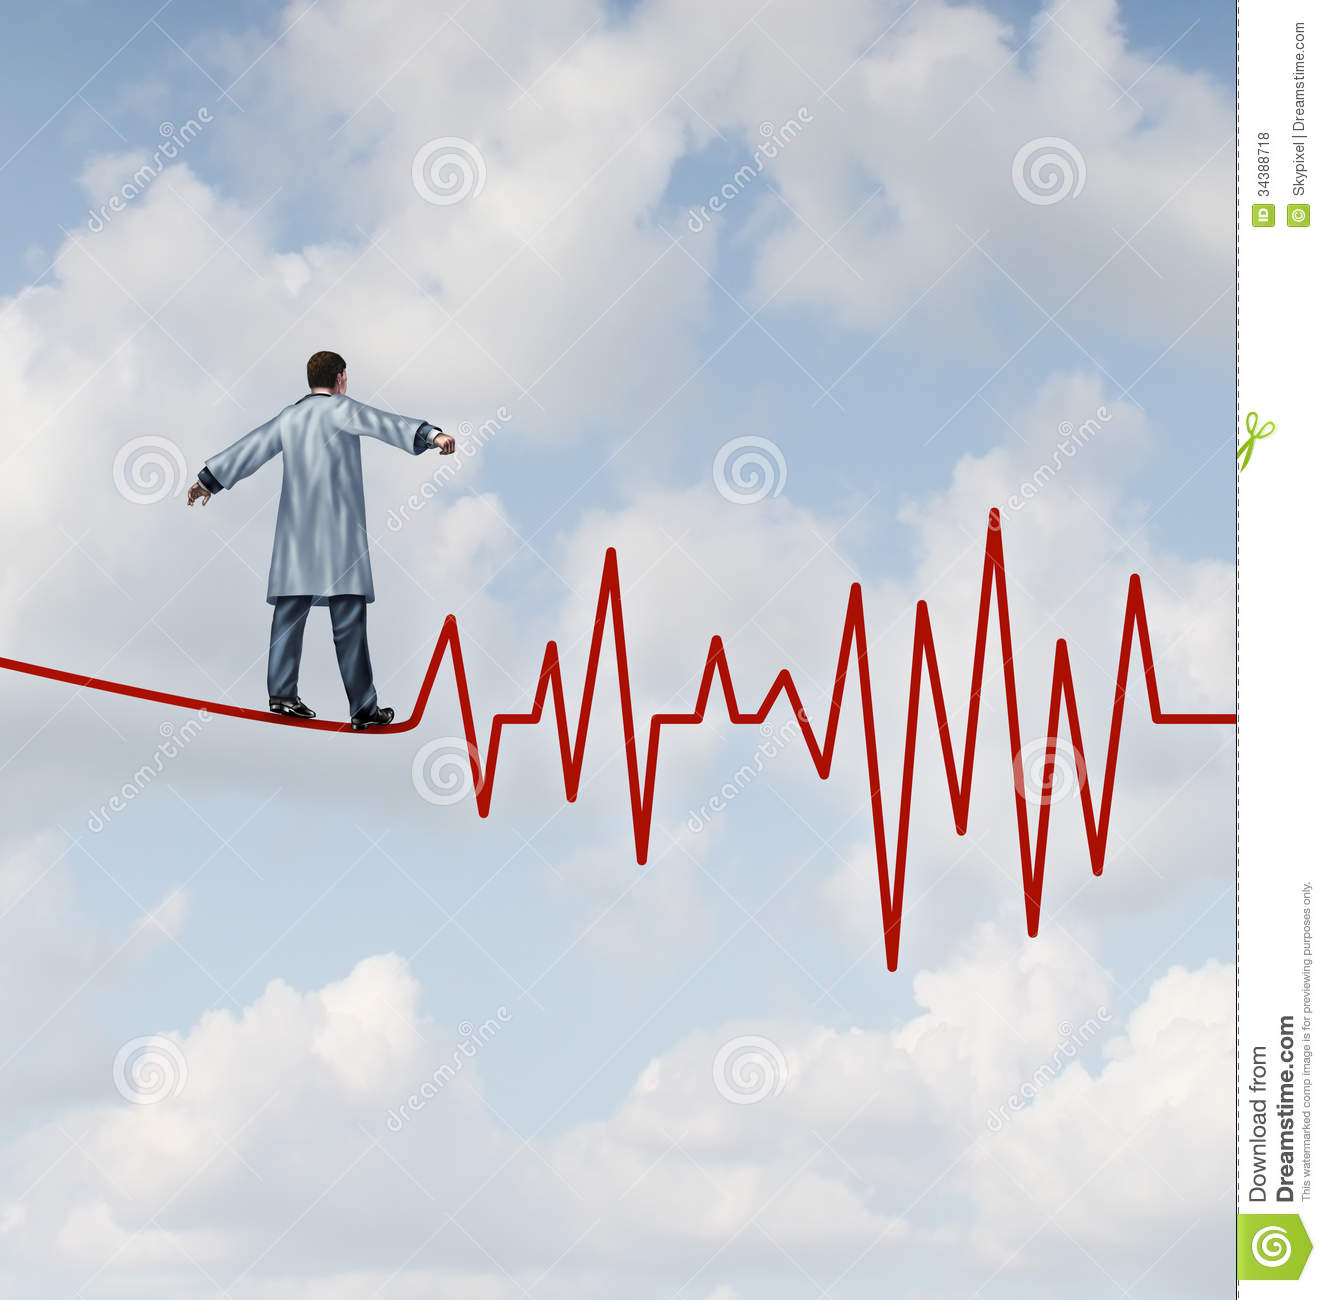 Doctor Diagnosis Danger Royalty Free Stock Photos - Image: 34388718